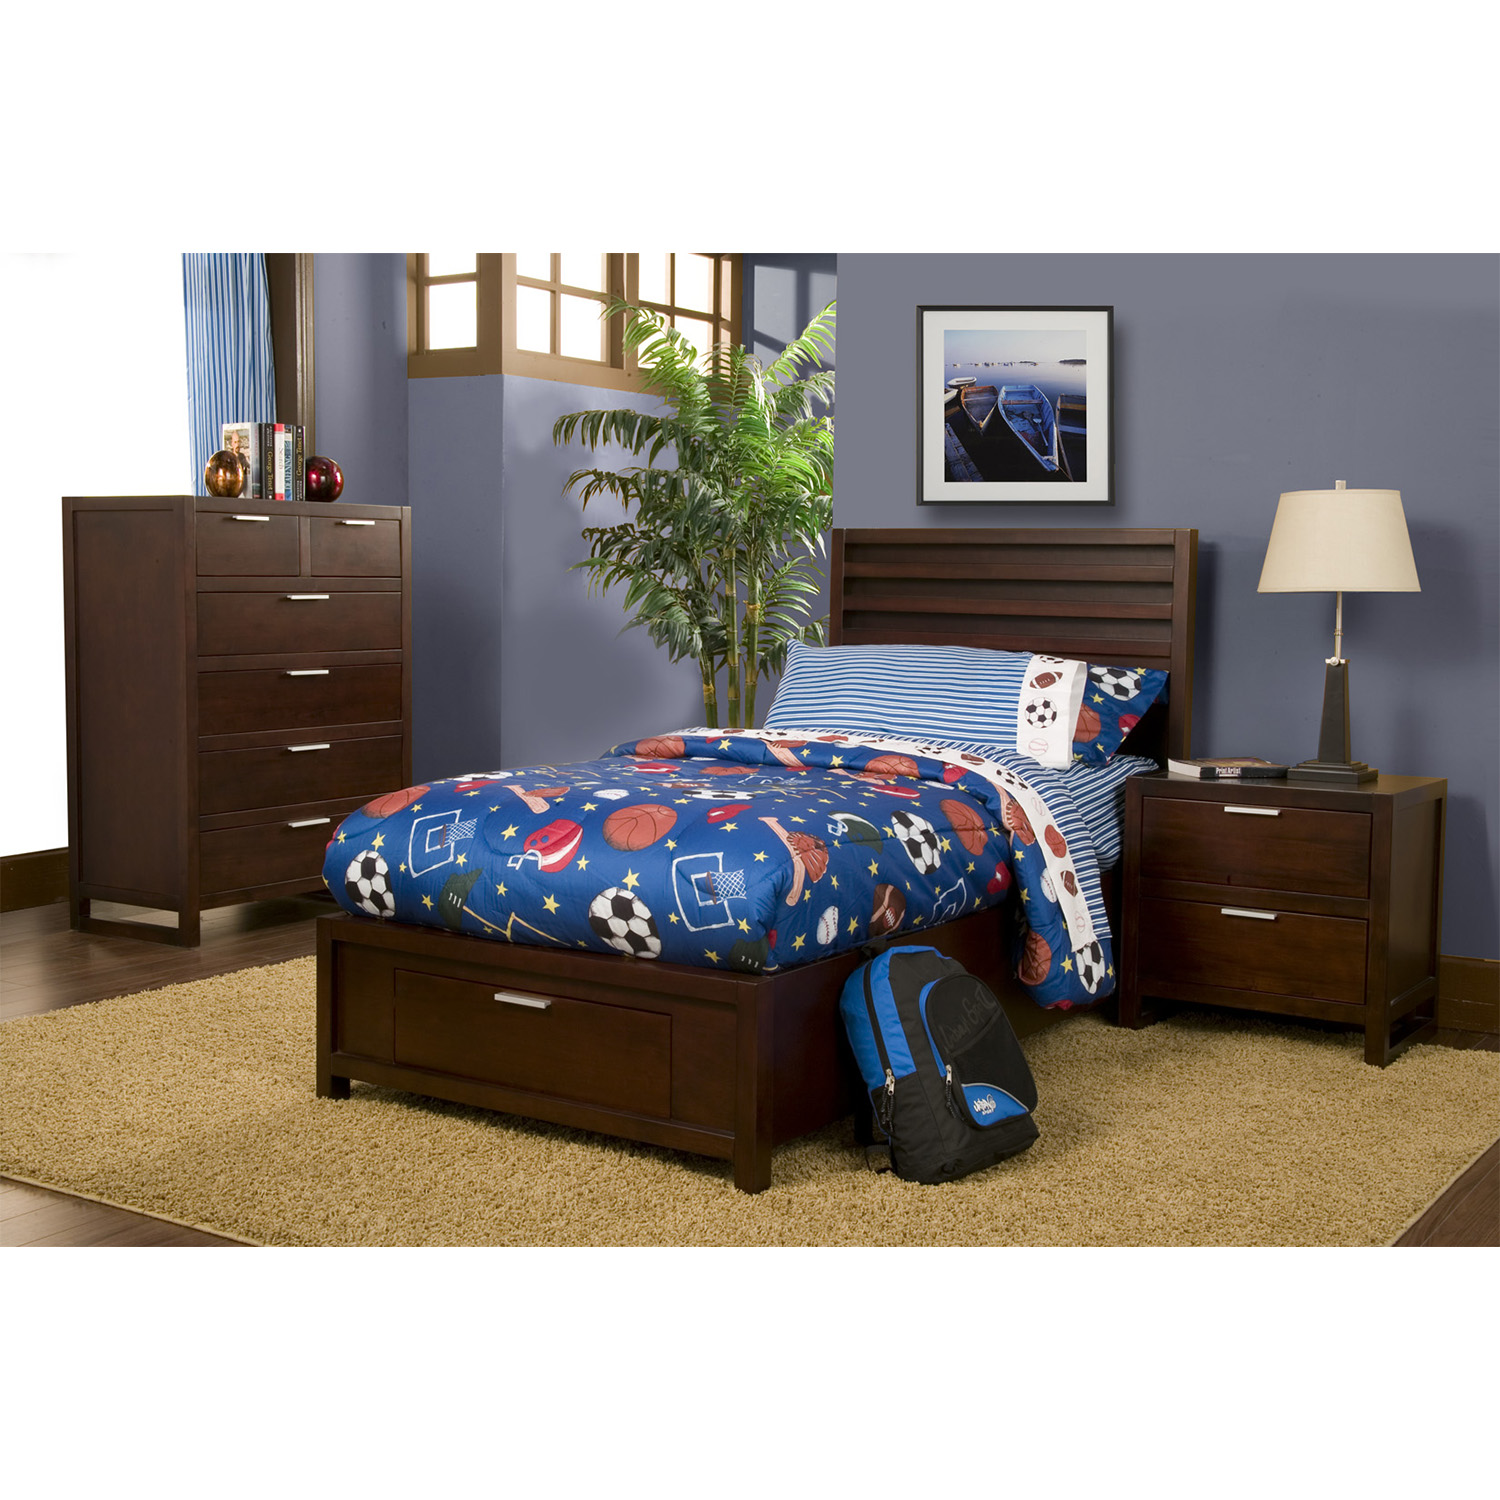 Camarillo Twin Storage Platform Bed Set - Merlot